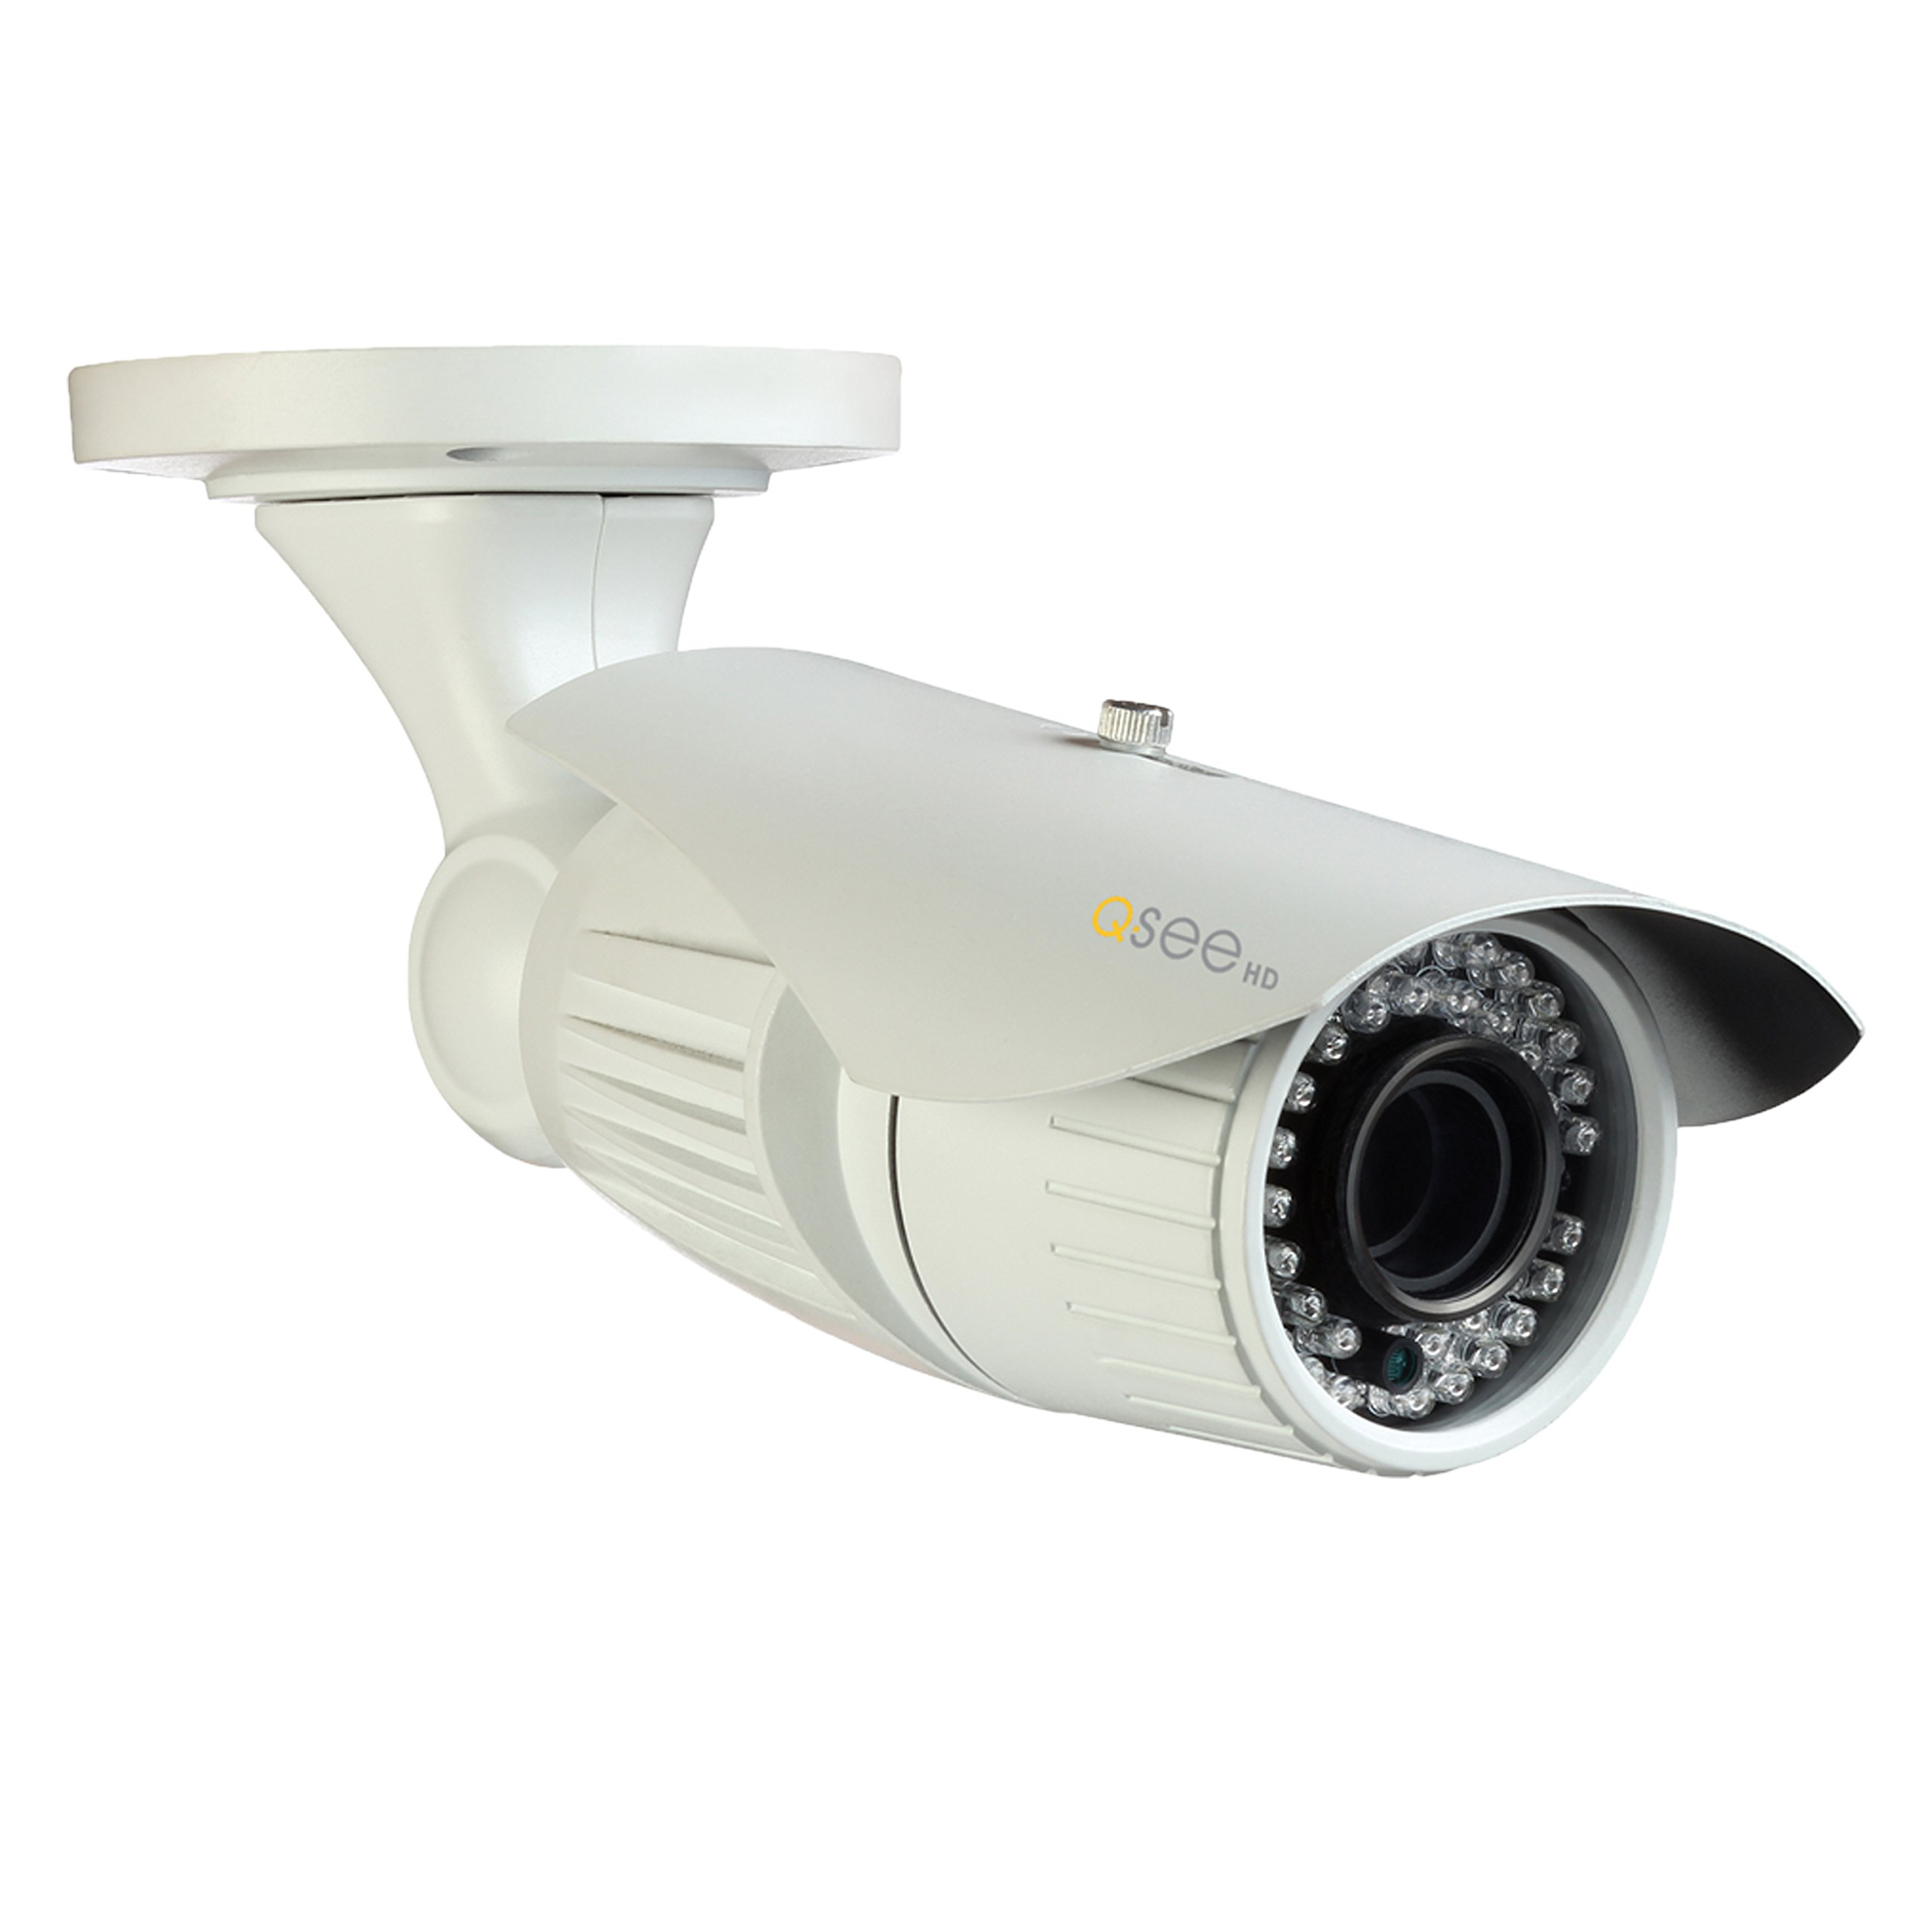 Q-See QTH8077BA 1080p High Definition Analog, Auto Focus Bullet Security Camera